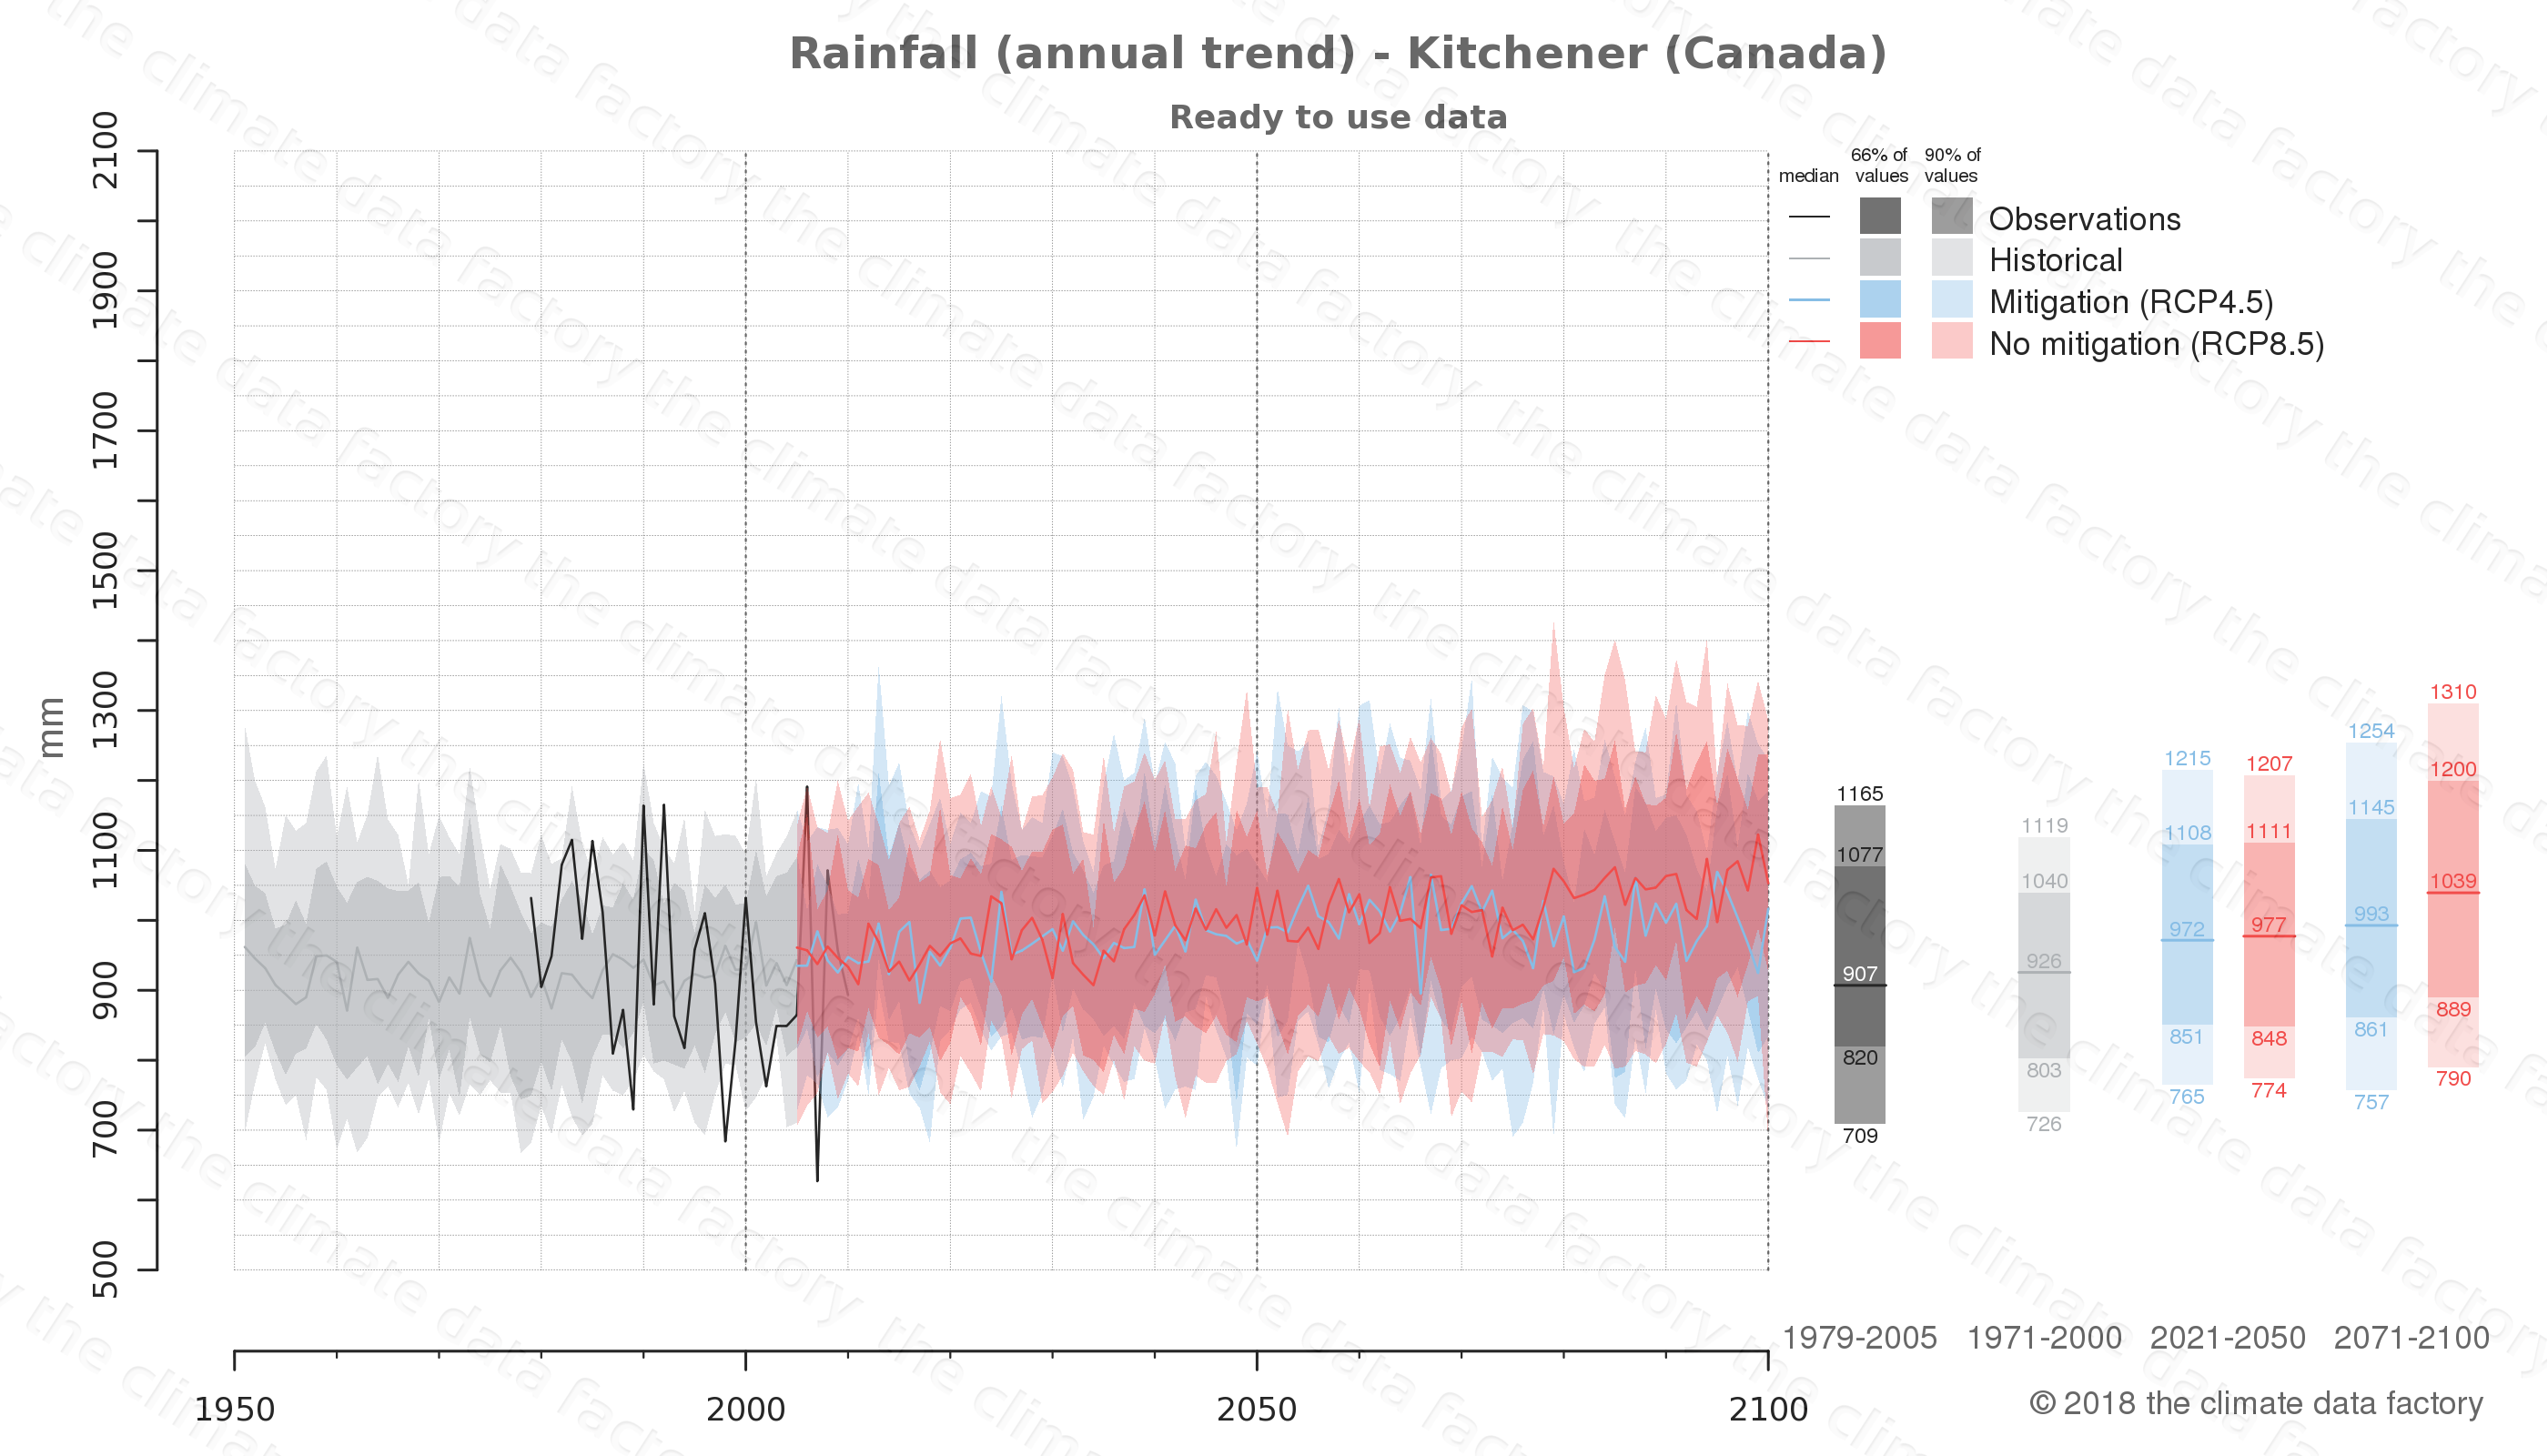 climate change data policy adaptation climate graph city data rainfall kitchener canada